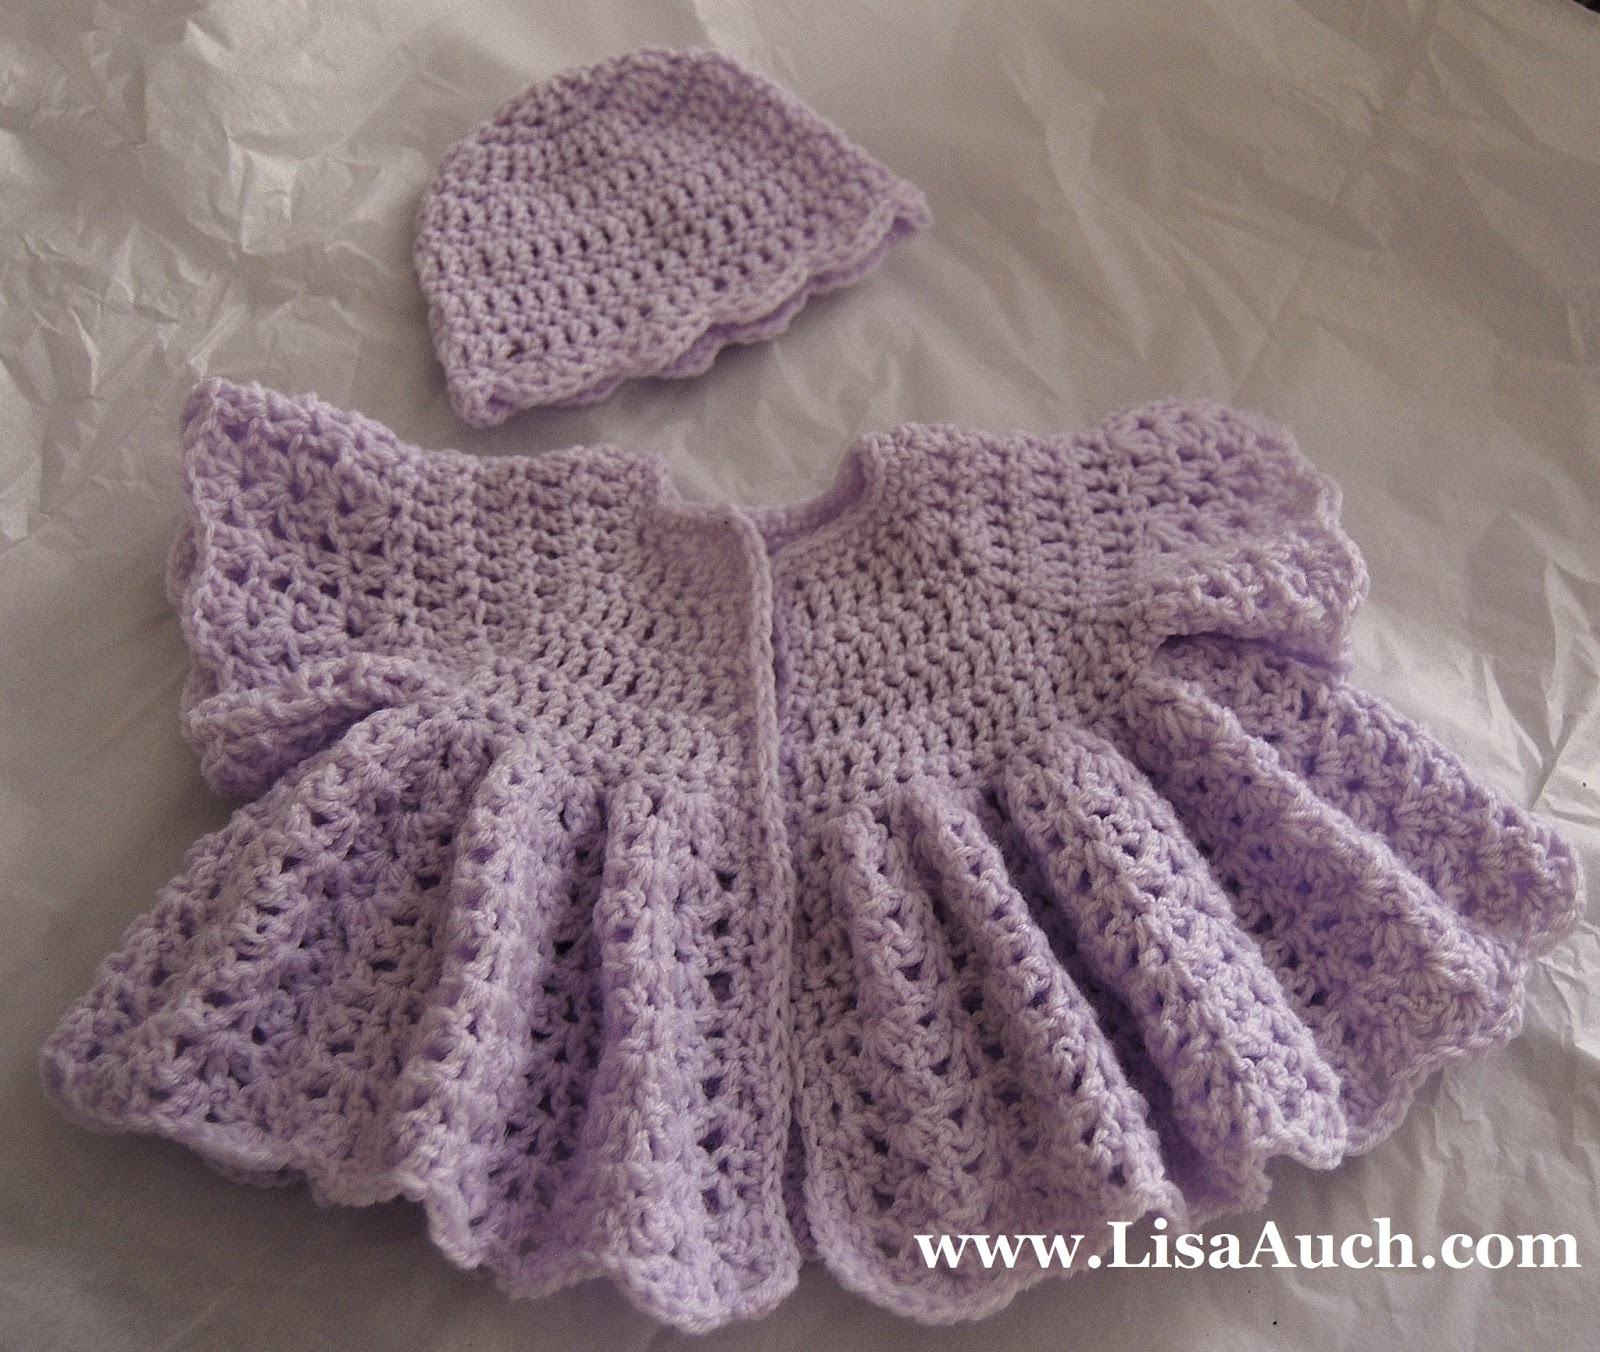 Free Pattern Crochet : Free Crochet Sweater Patterns for Babies